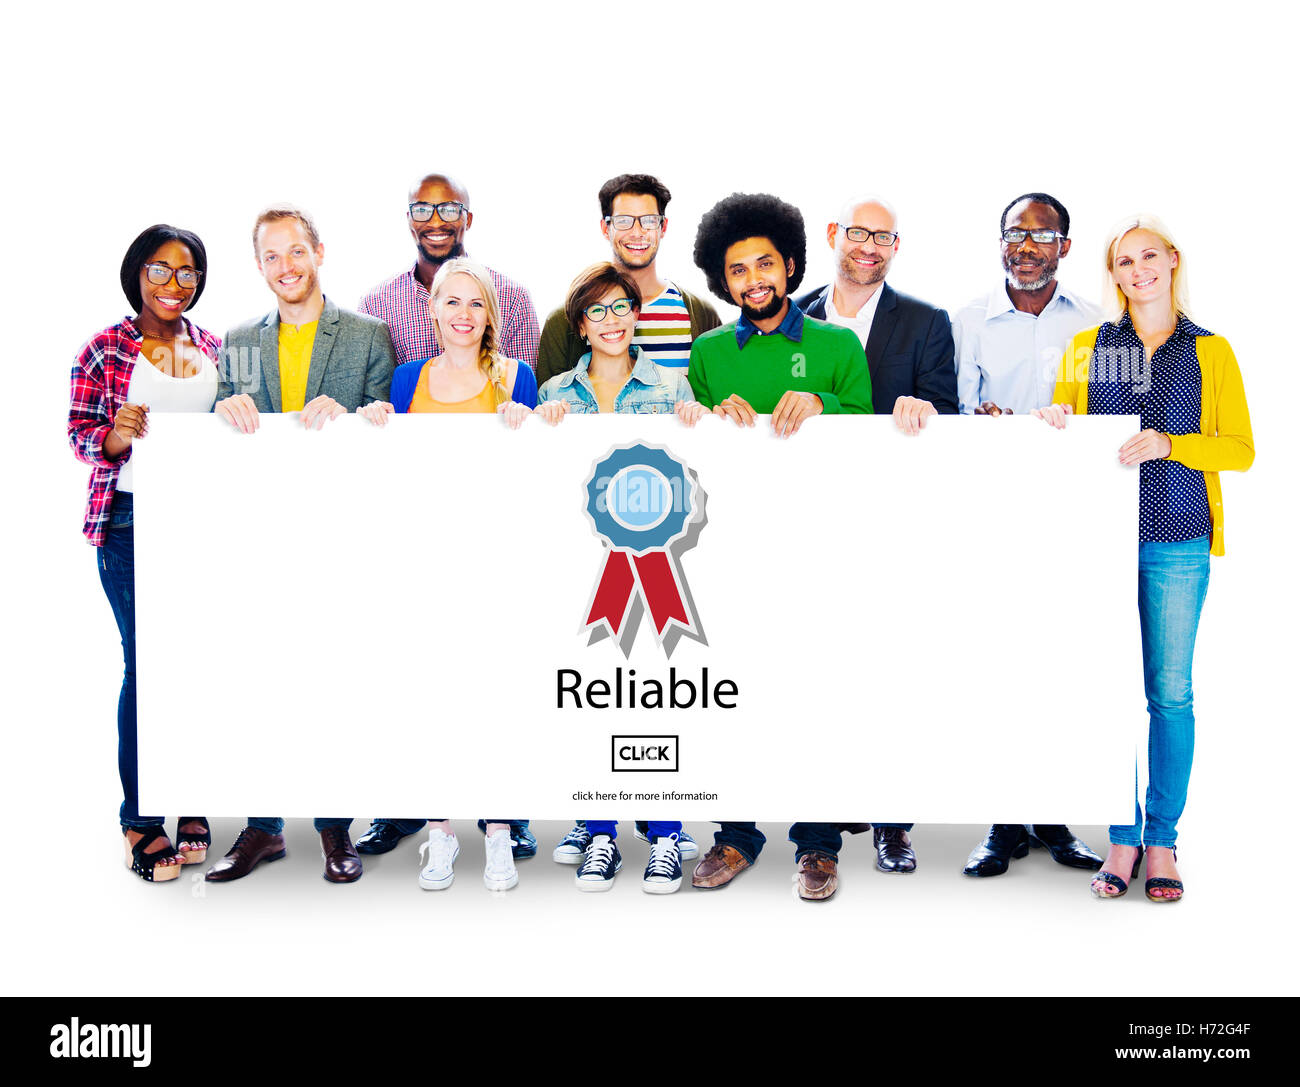 Reliable Commitment Consistency Dependable Concept - Stock Image